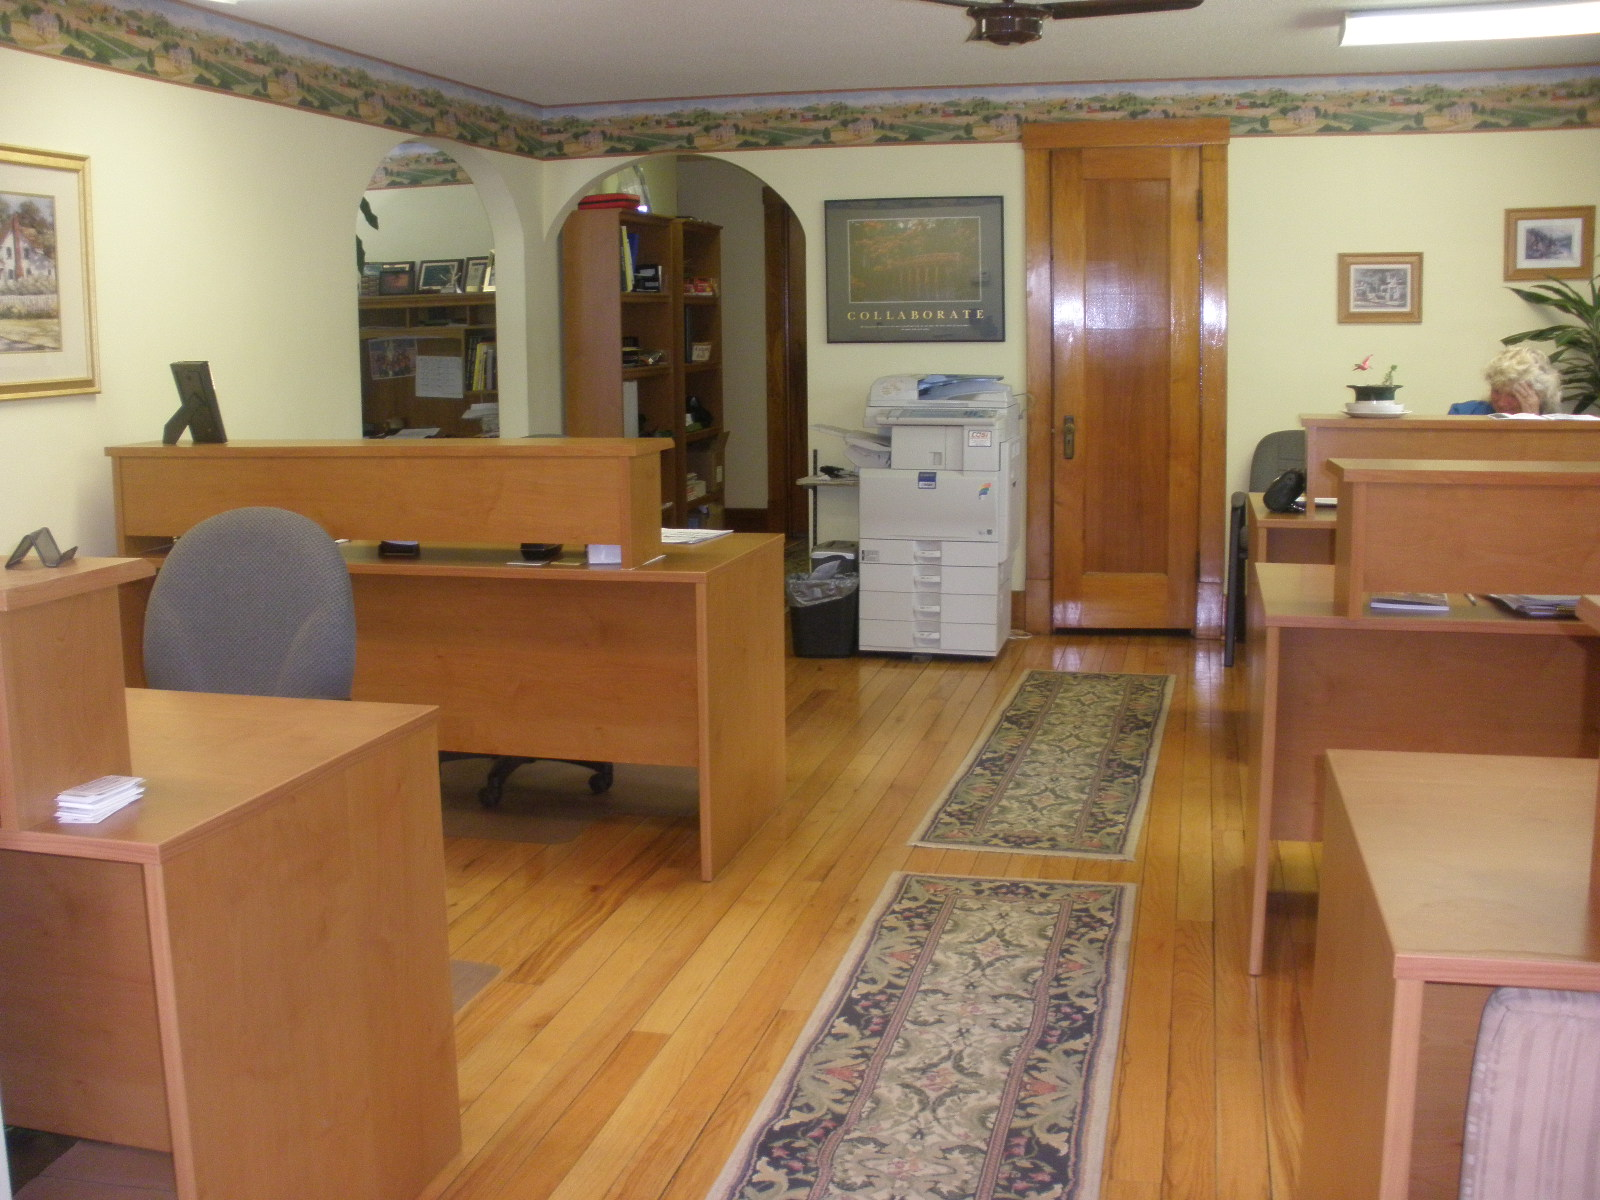 Buncy Real Estate - Main Office